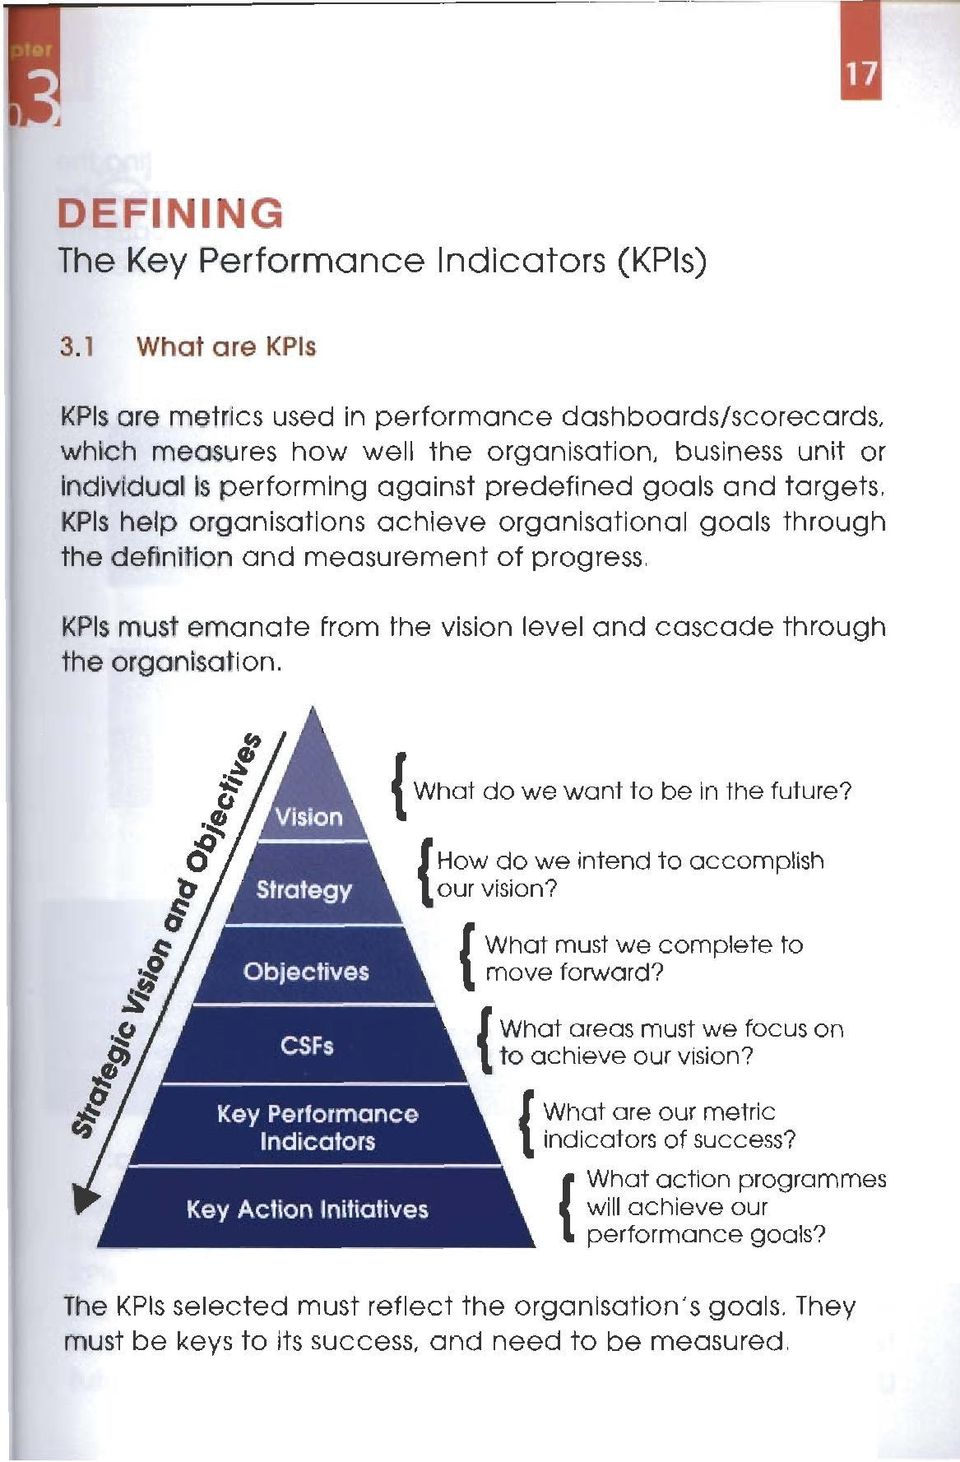 Whcrt areas must we focus on to achieve our vision? Key Performance Indicators What are our metric indicators of success?